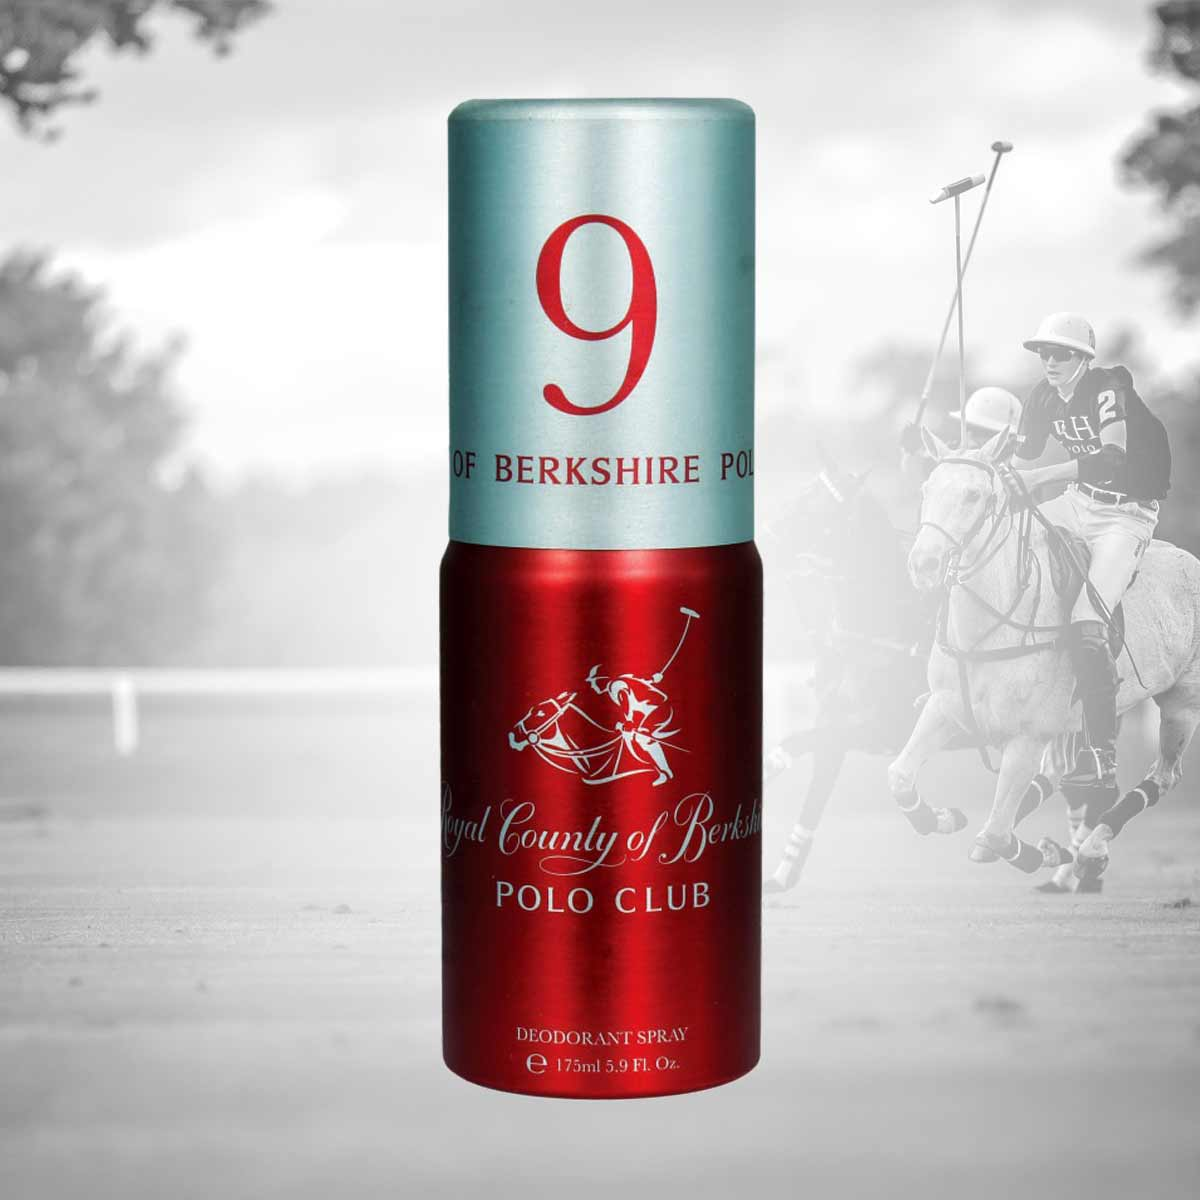 Royal County Of Berkshire Polo Club No 9 Deodorant Spray